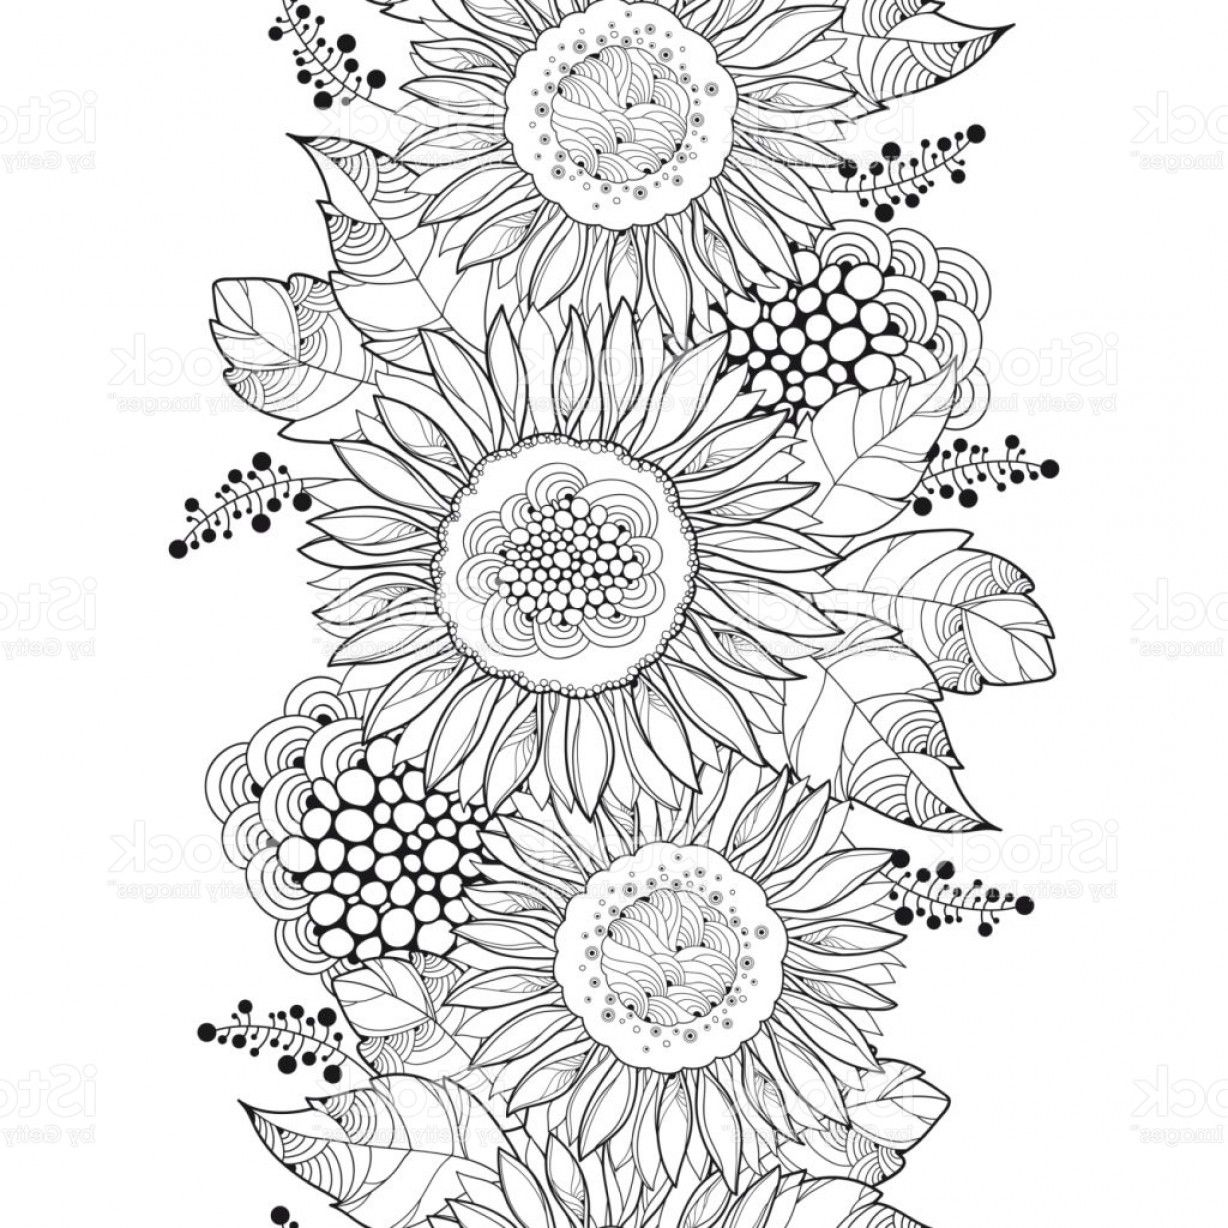 outline of a sunflower outline of a sunflower sunflower of outline a